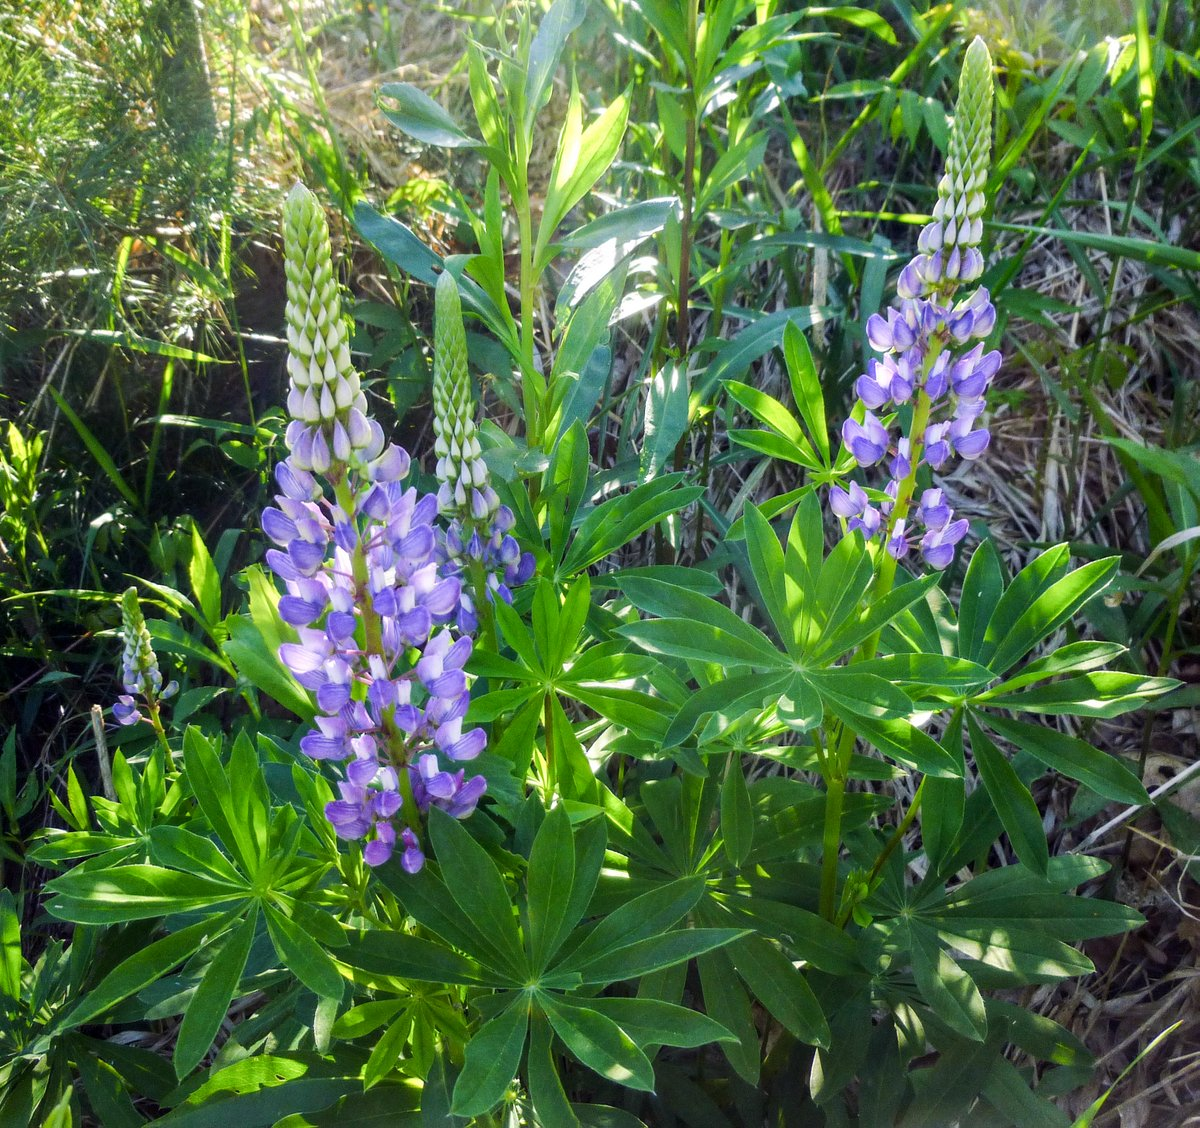 4. Lupines